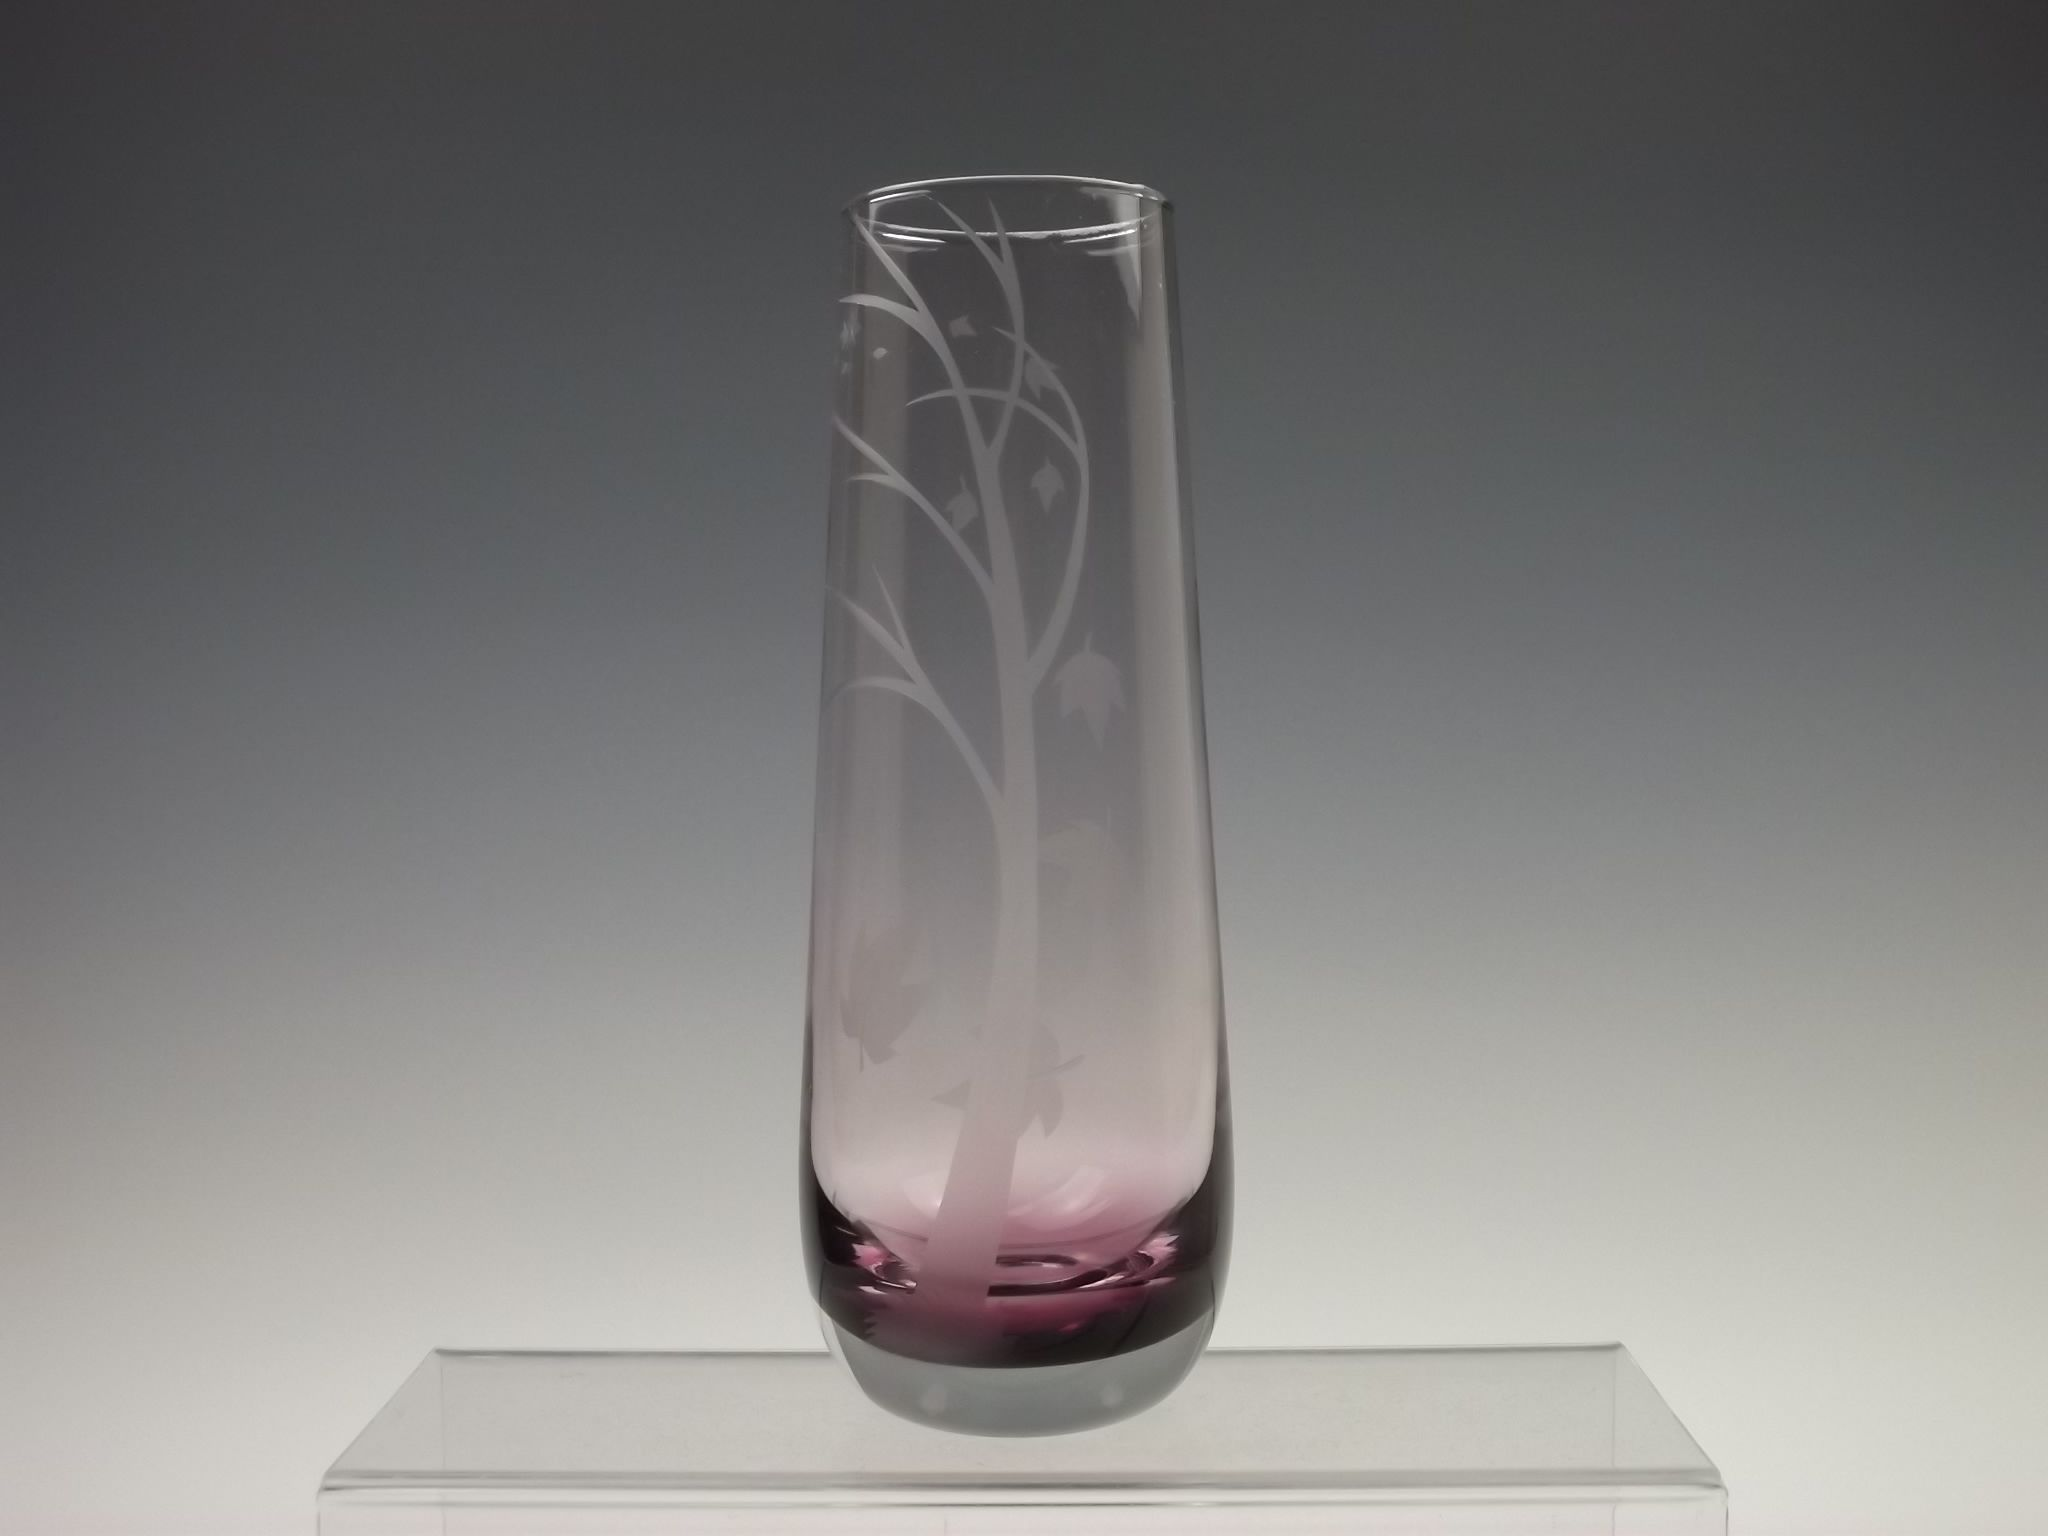 Caithness Autumn Leaves Sandblasted Amethyst Glass Vase Glass Glass Crystal In 2019